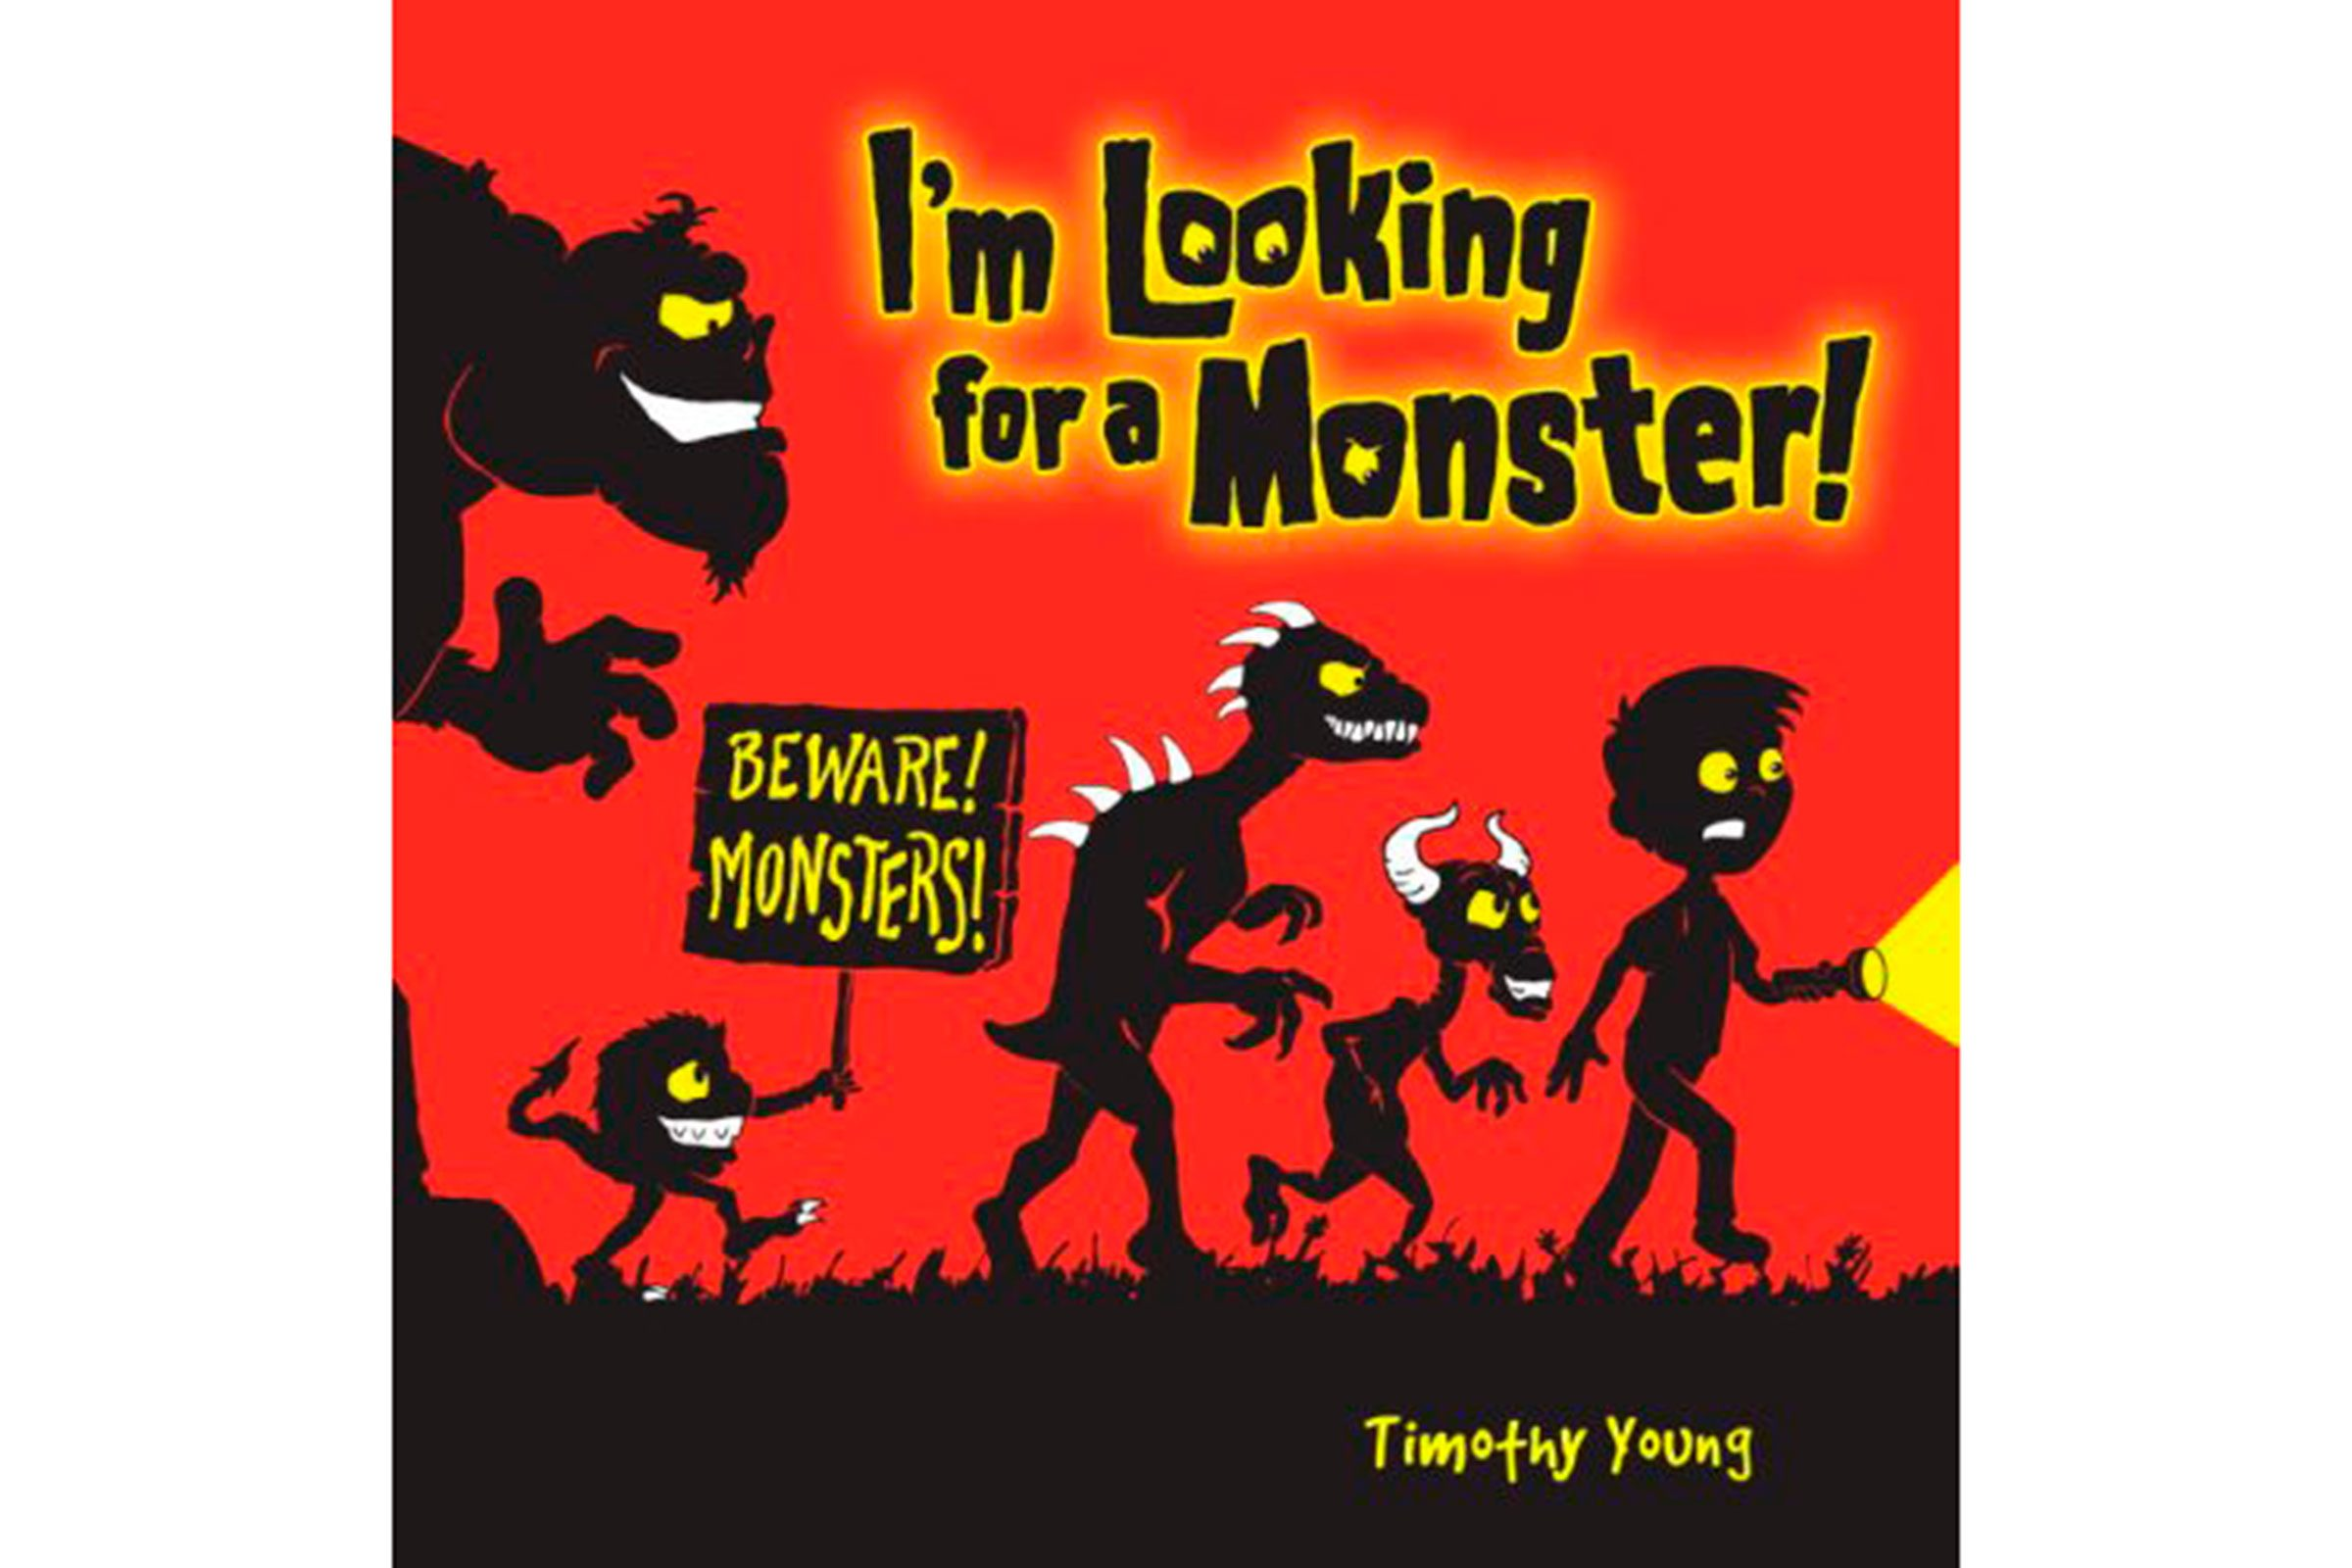 im looking for a monster by timothy young